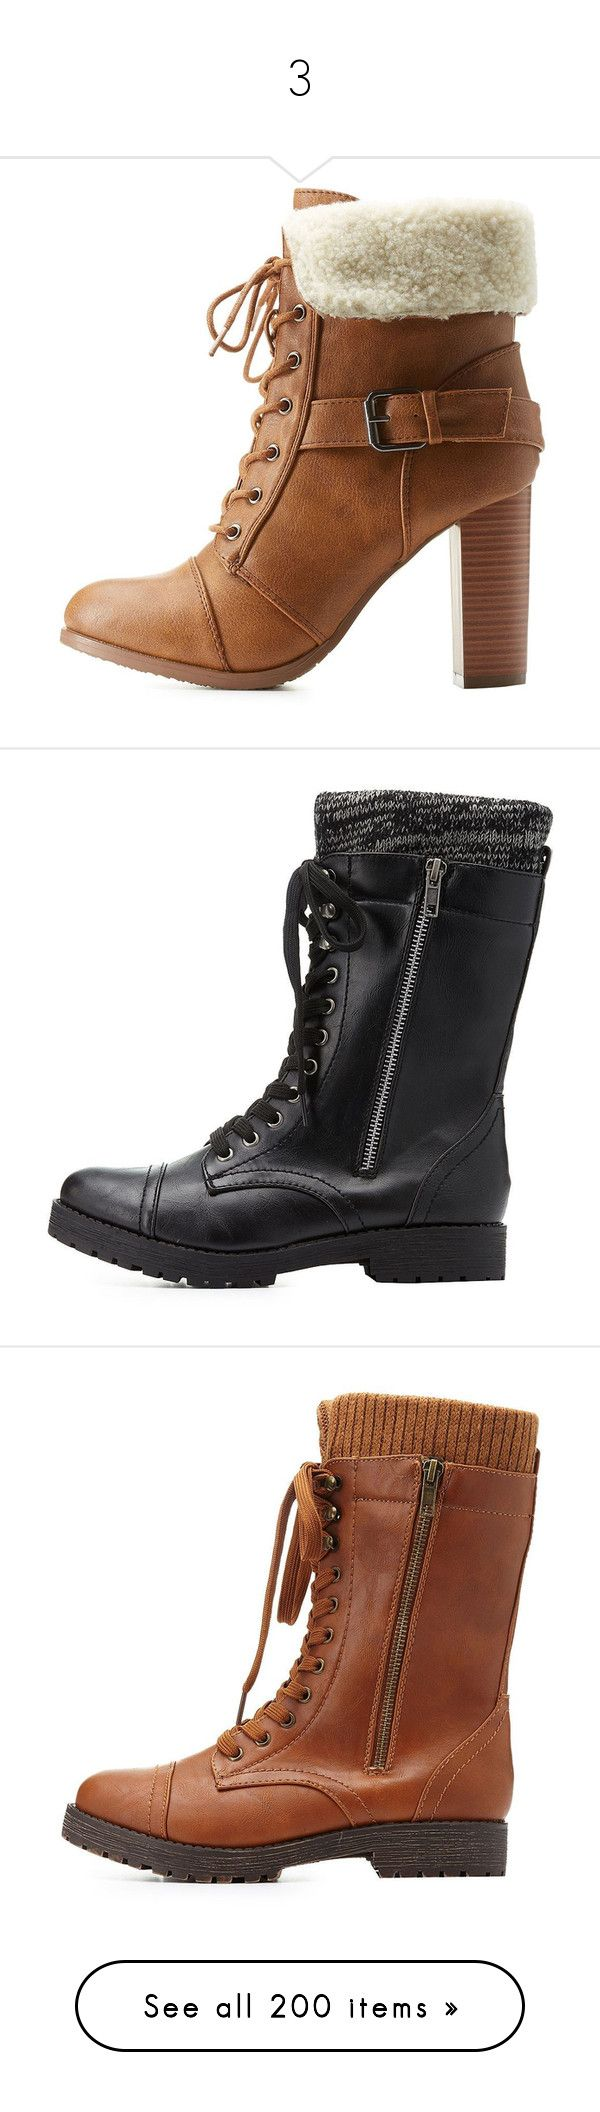 """""""3"""" by kitten25 ❤ liked on Polyvore featuring shoes, boots, ankle booties, black, black lace up ankle booties, military boots, black ankle booties, combat boots, black booties and black military boots"""